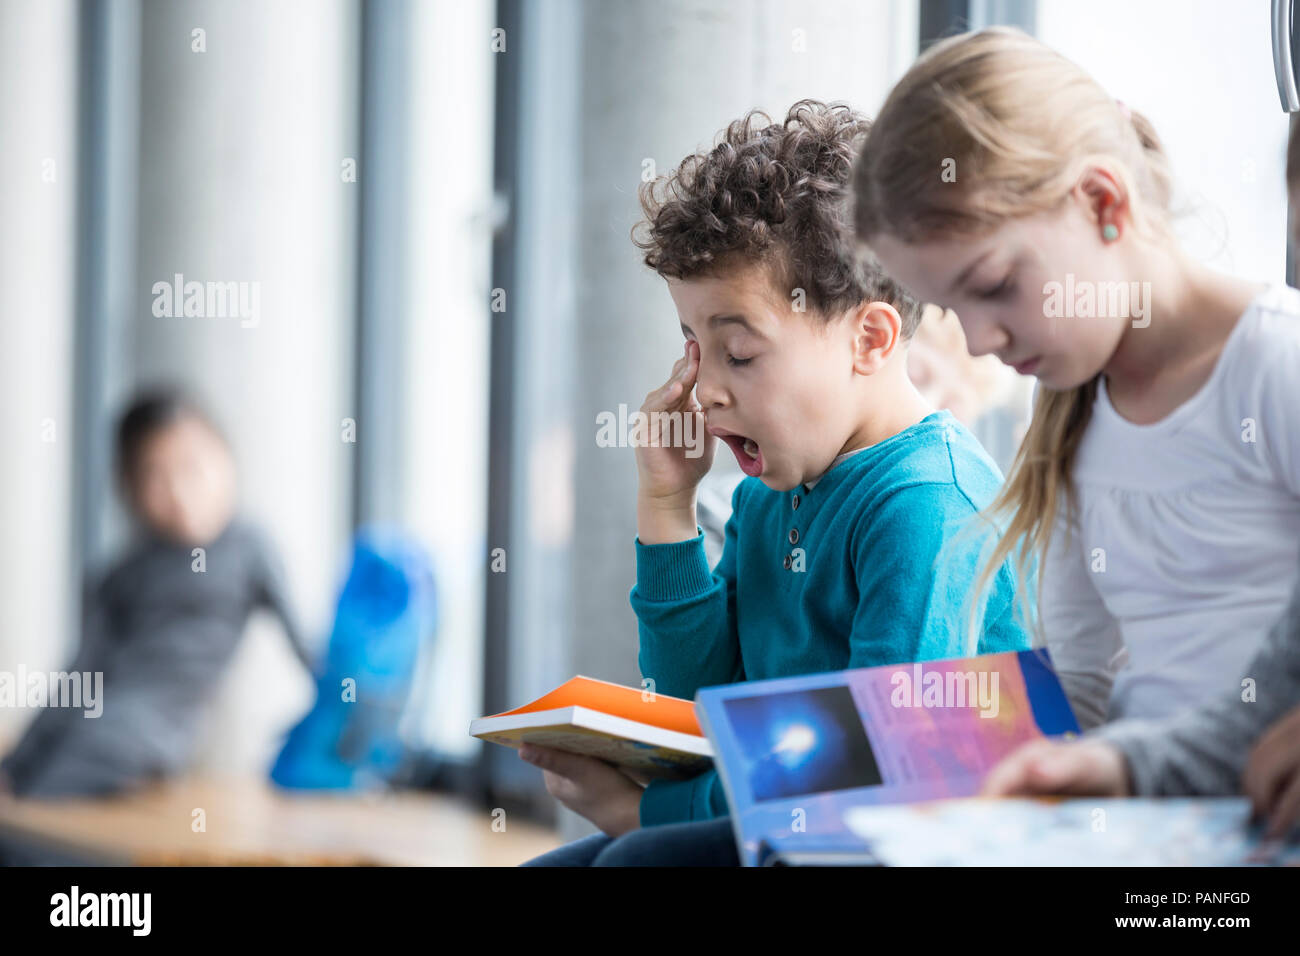 Tired schoolboy with book in school - Stock Image